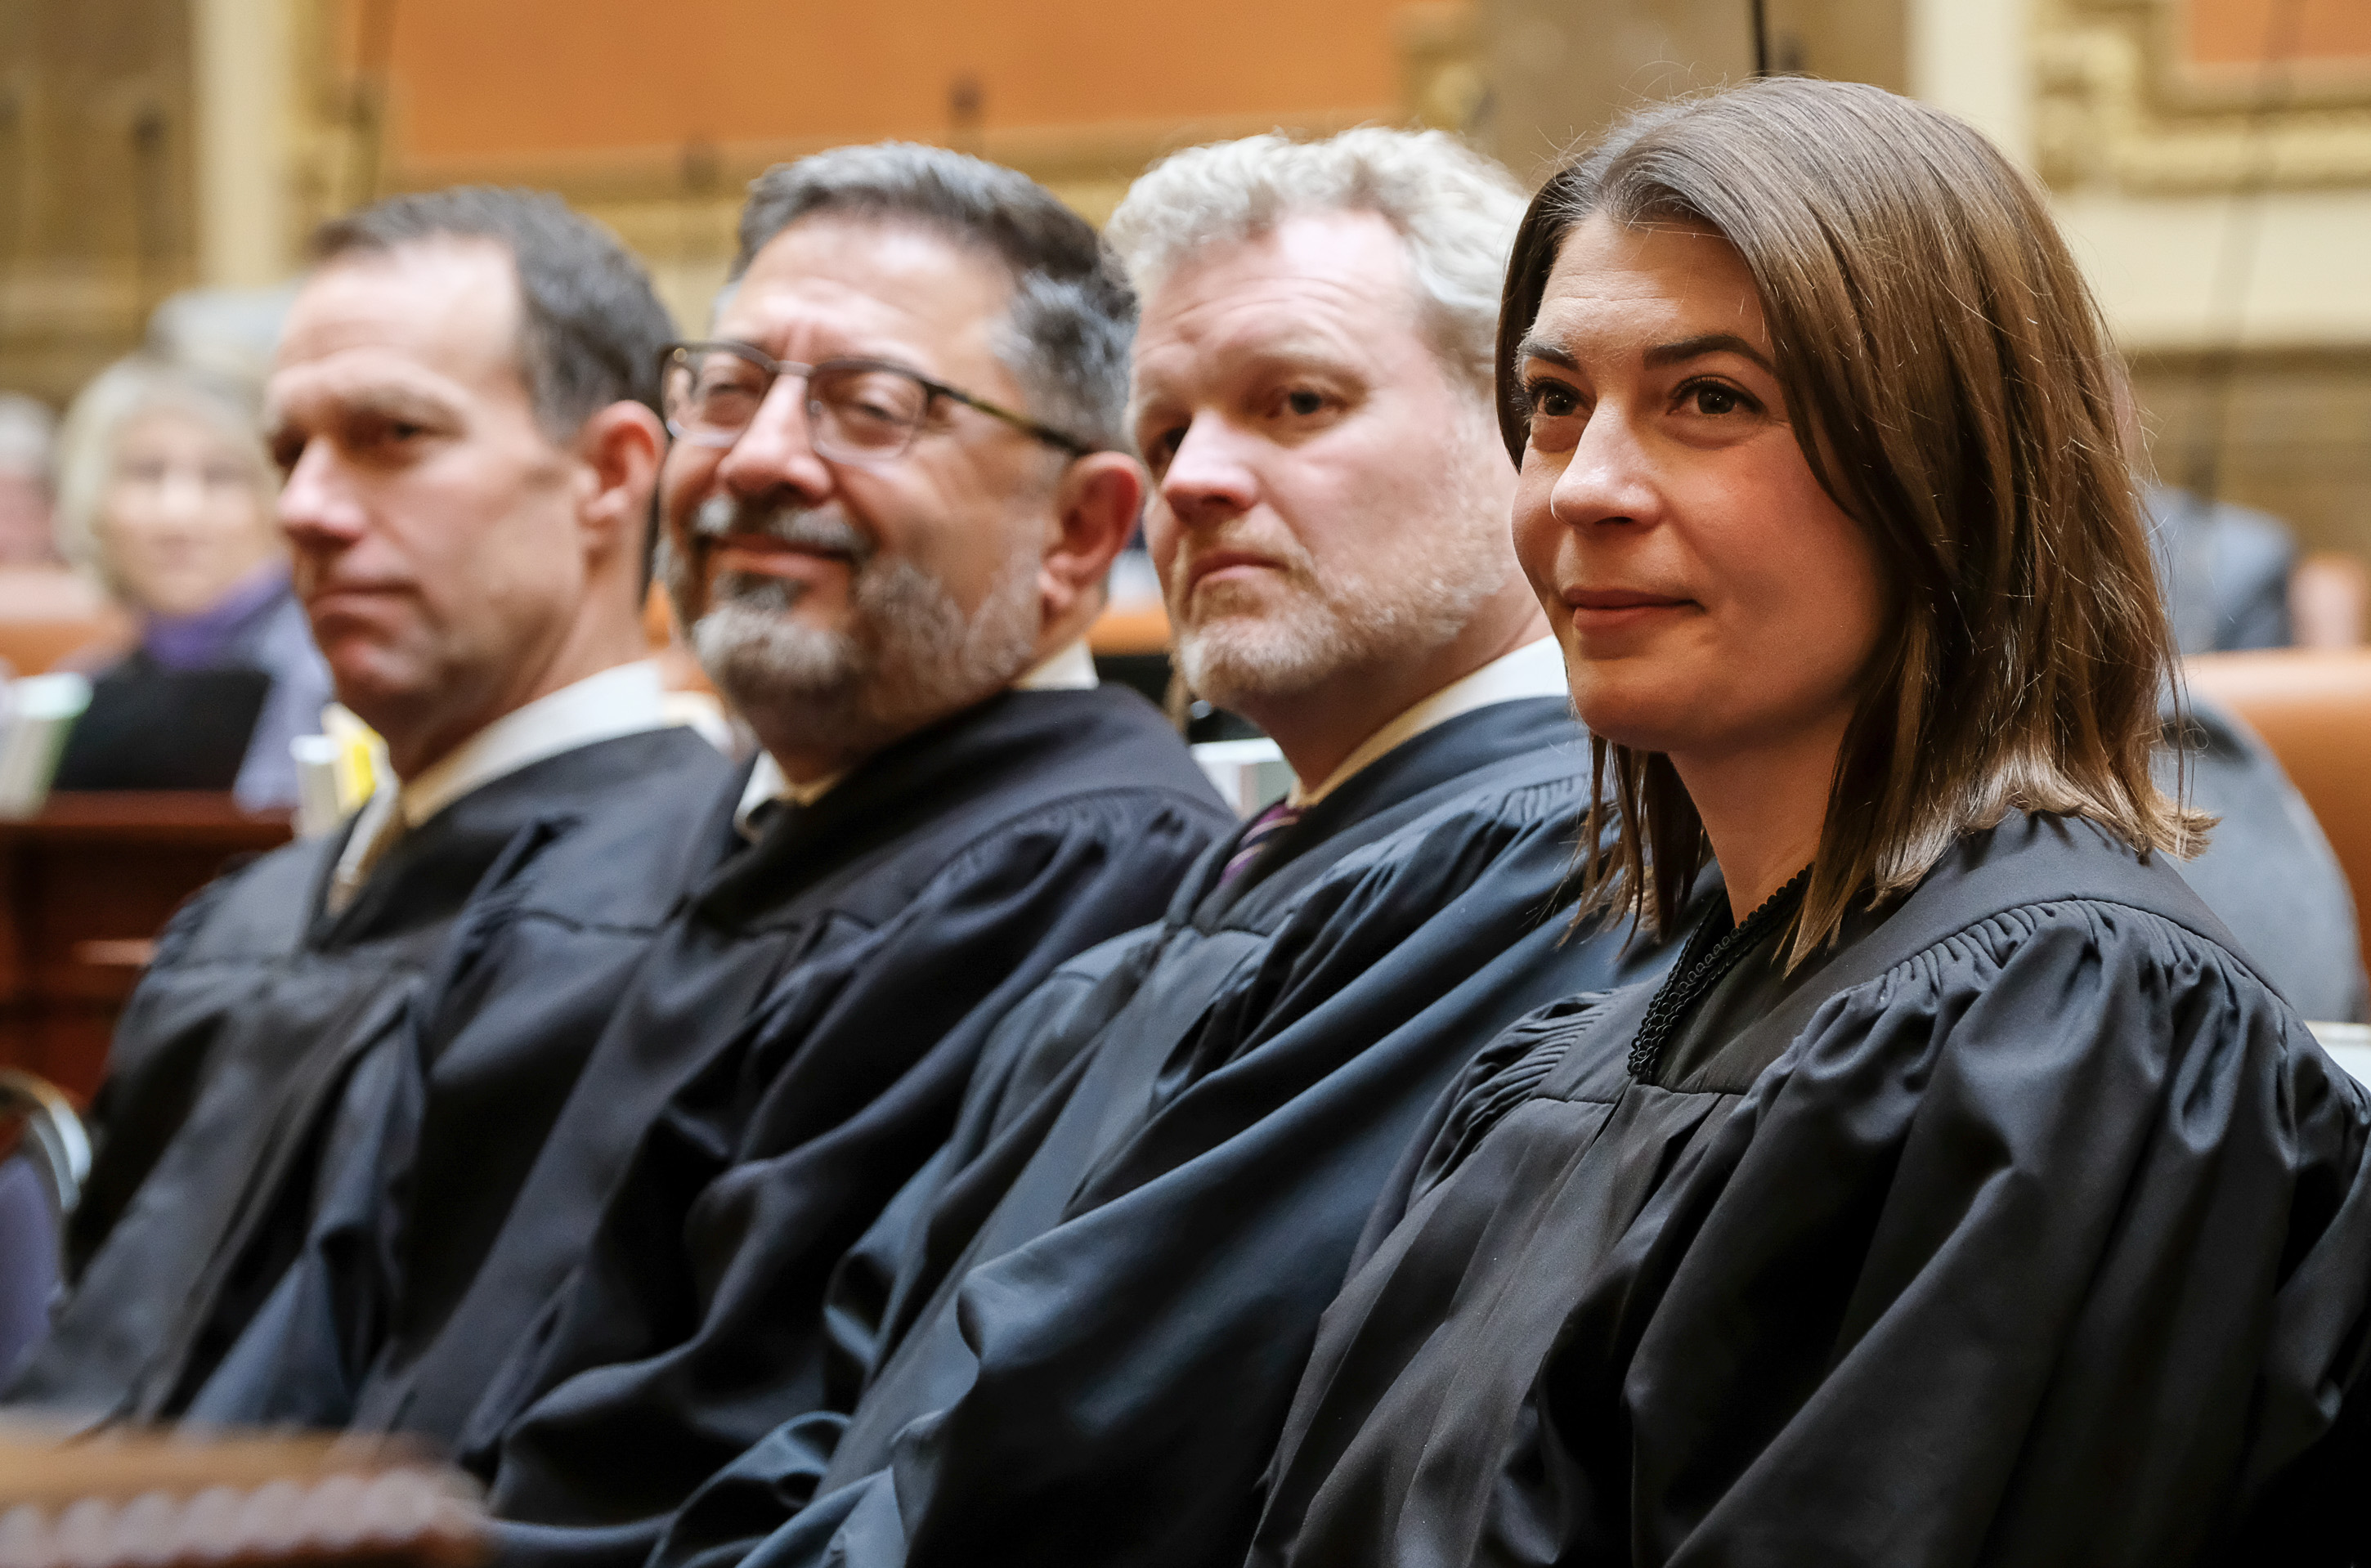 Utah chief justice praises collaboration between courts and legislators, which has led to significant judicial system reforms